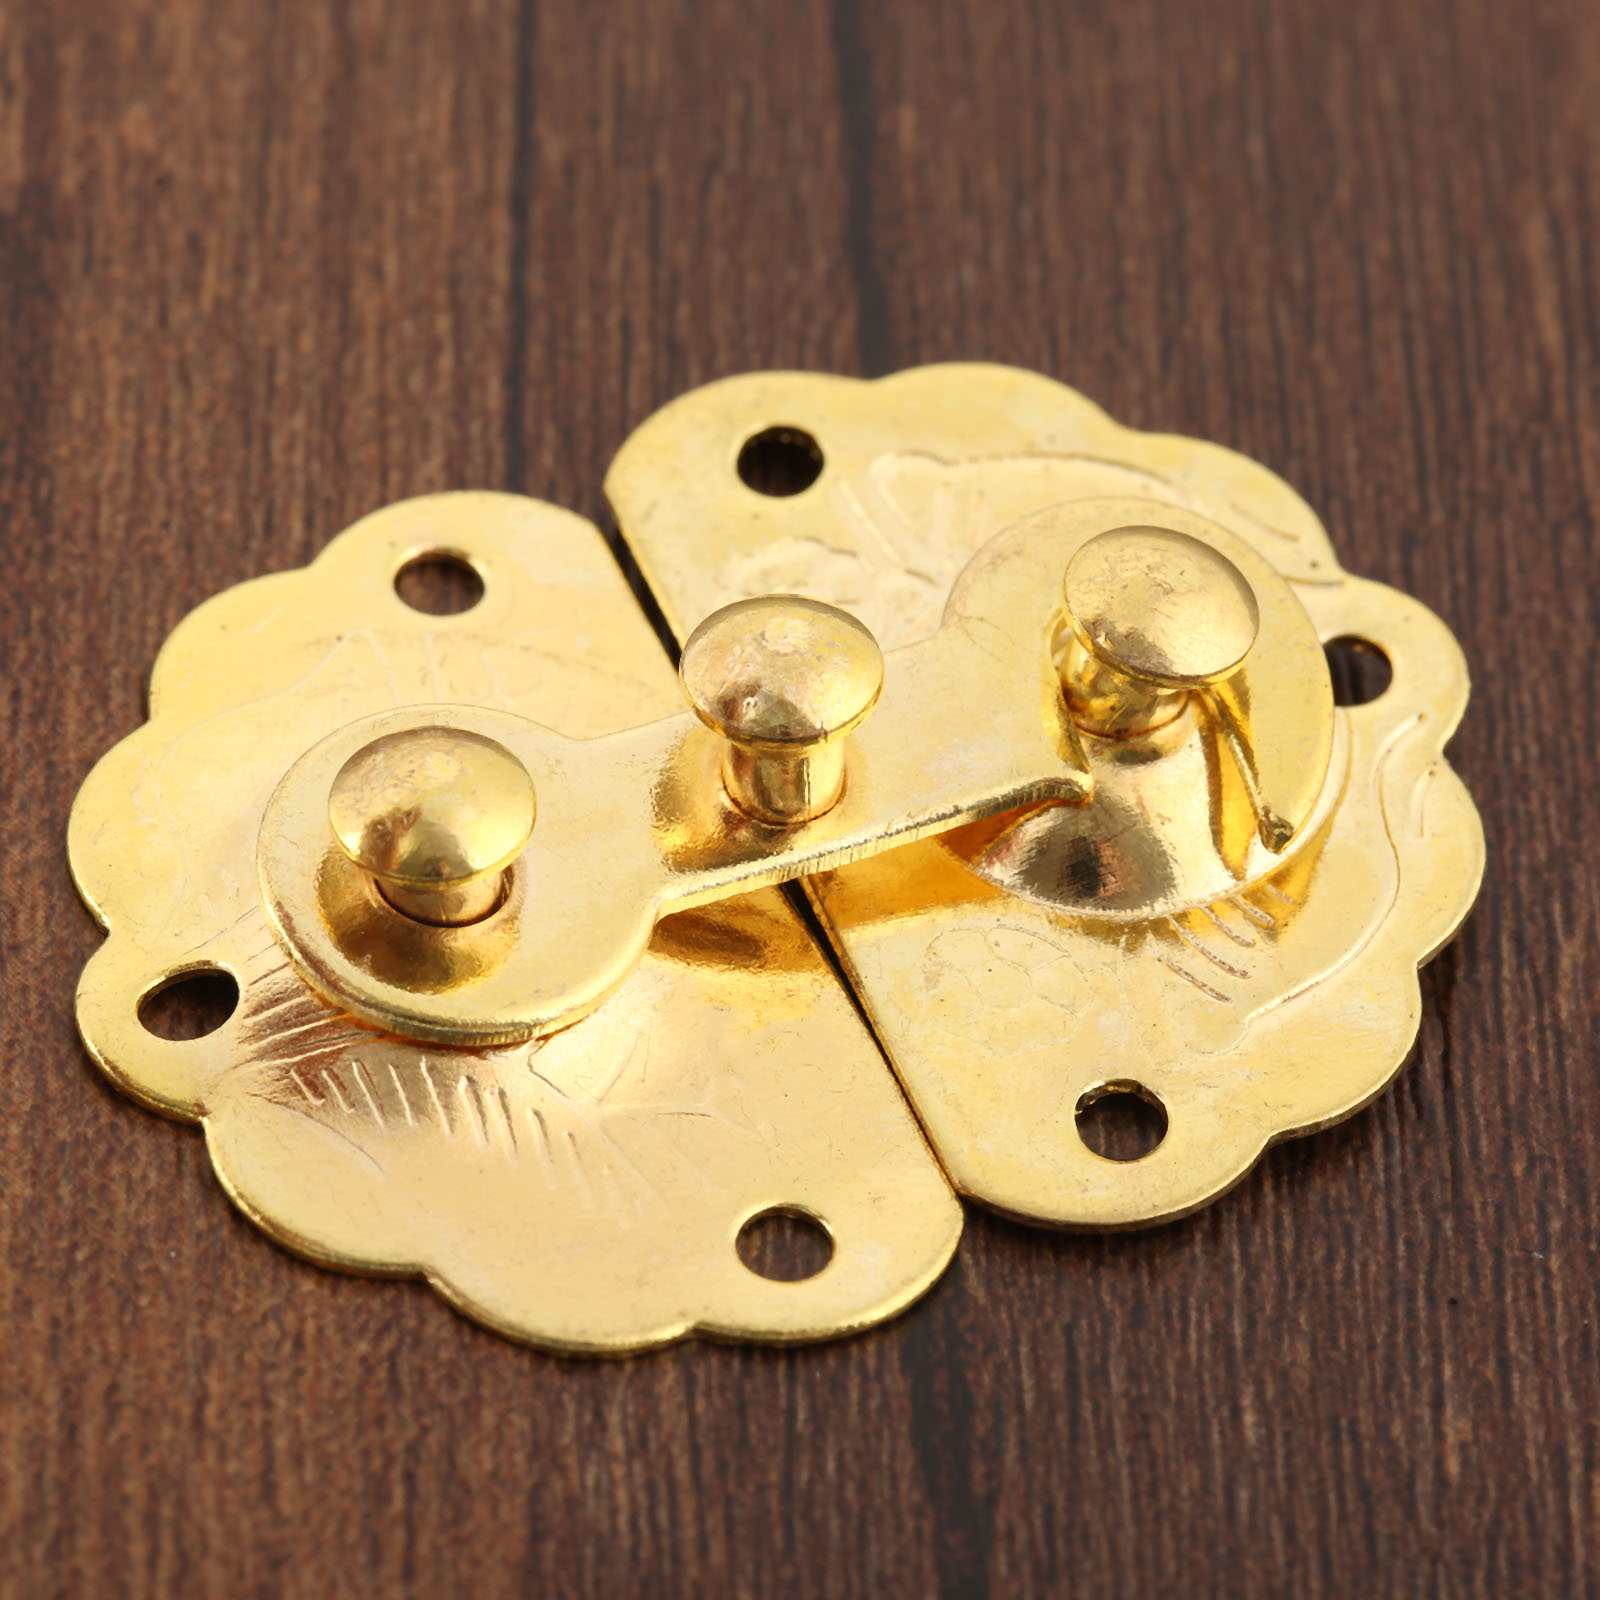 2Pcs Gold Iron Latches Catches 35*45mm Hasps Clasp Buckles Small Lock For Jewelry Wood Box Suitcase Furniture Hardware